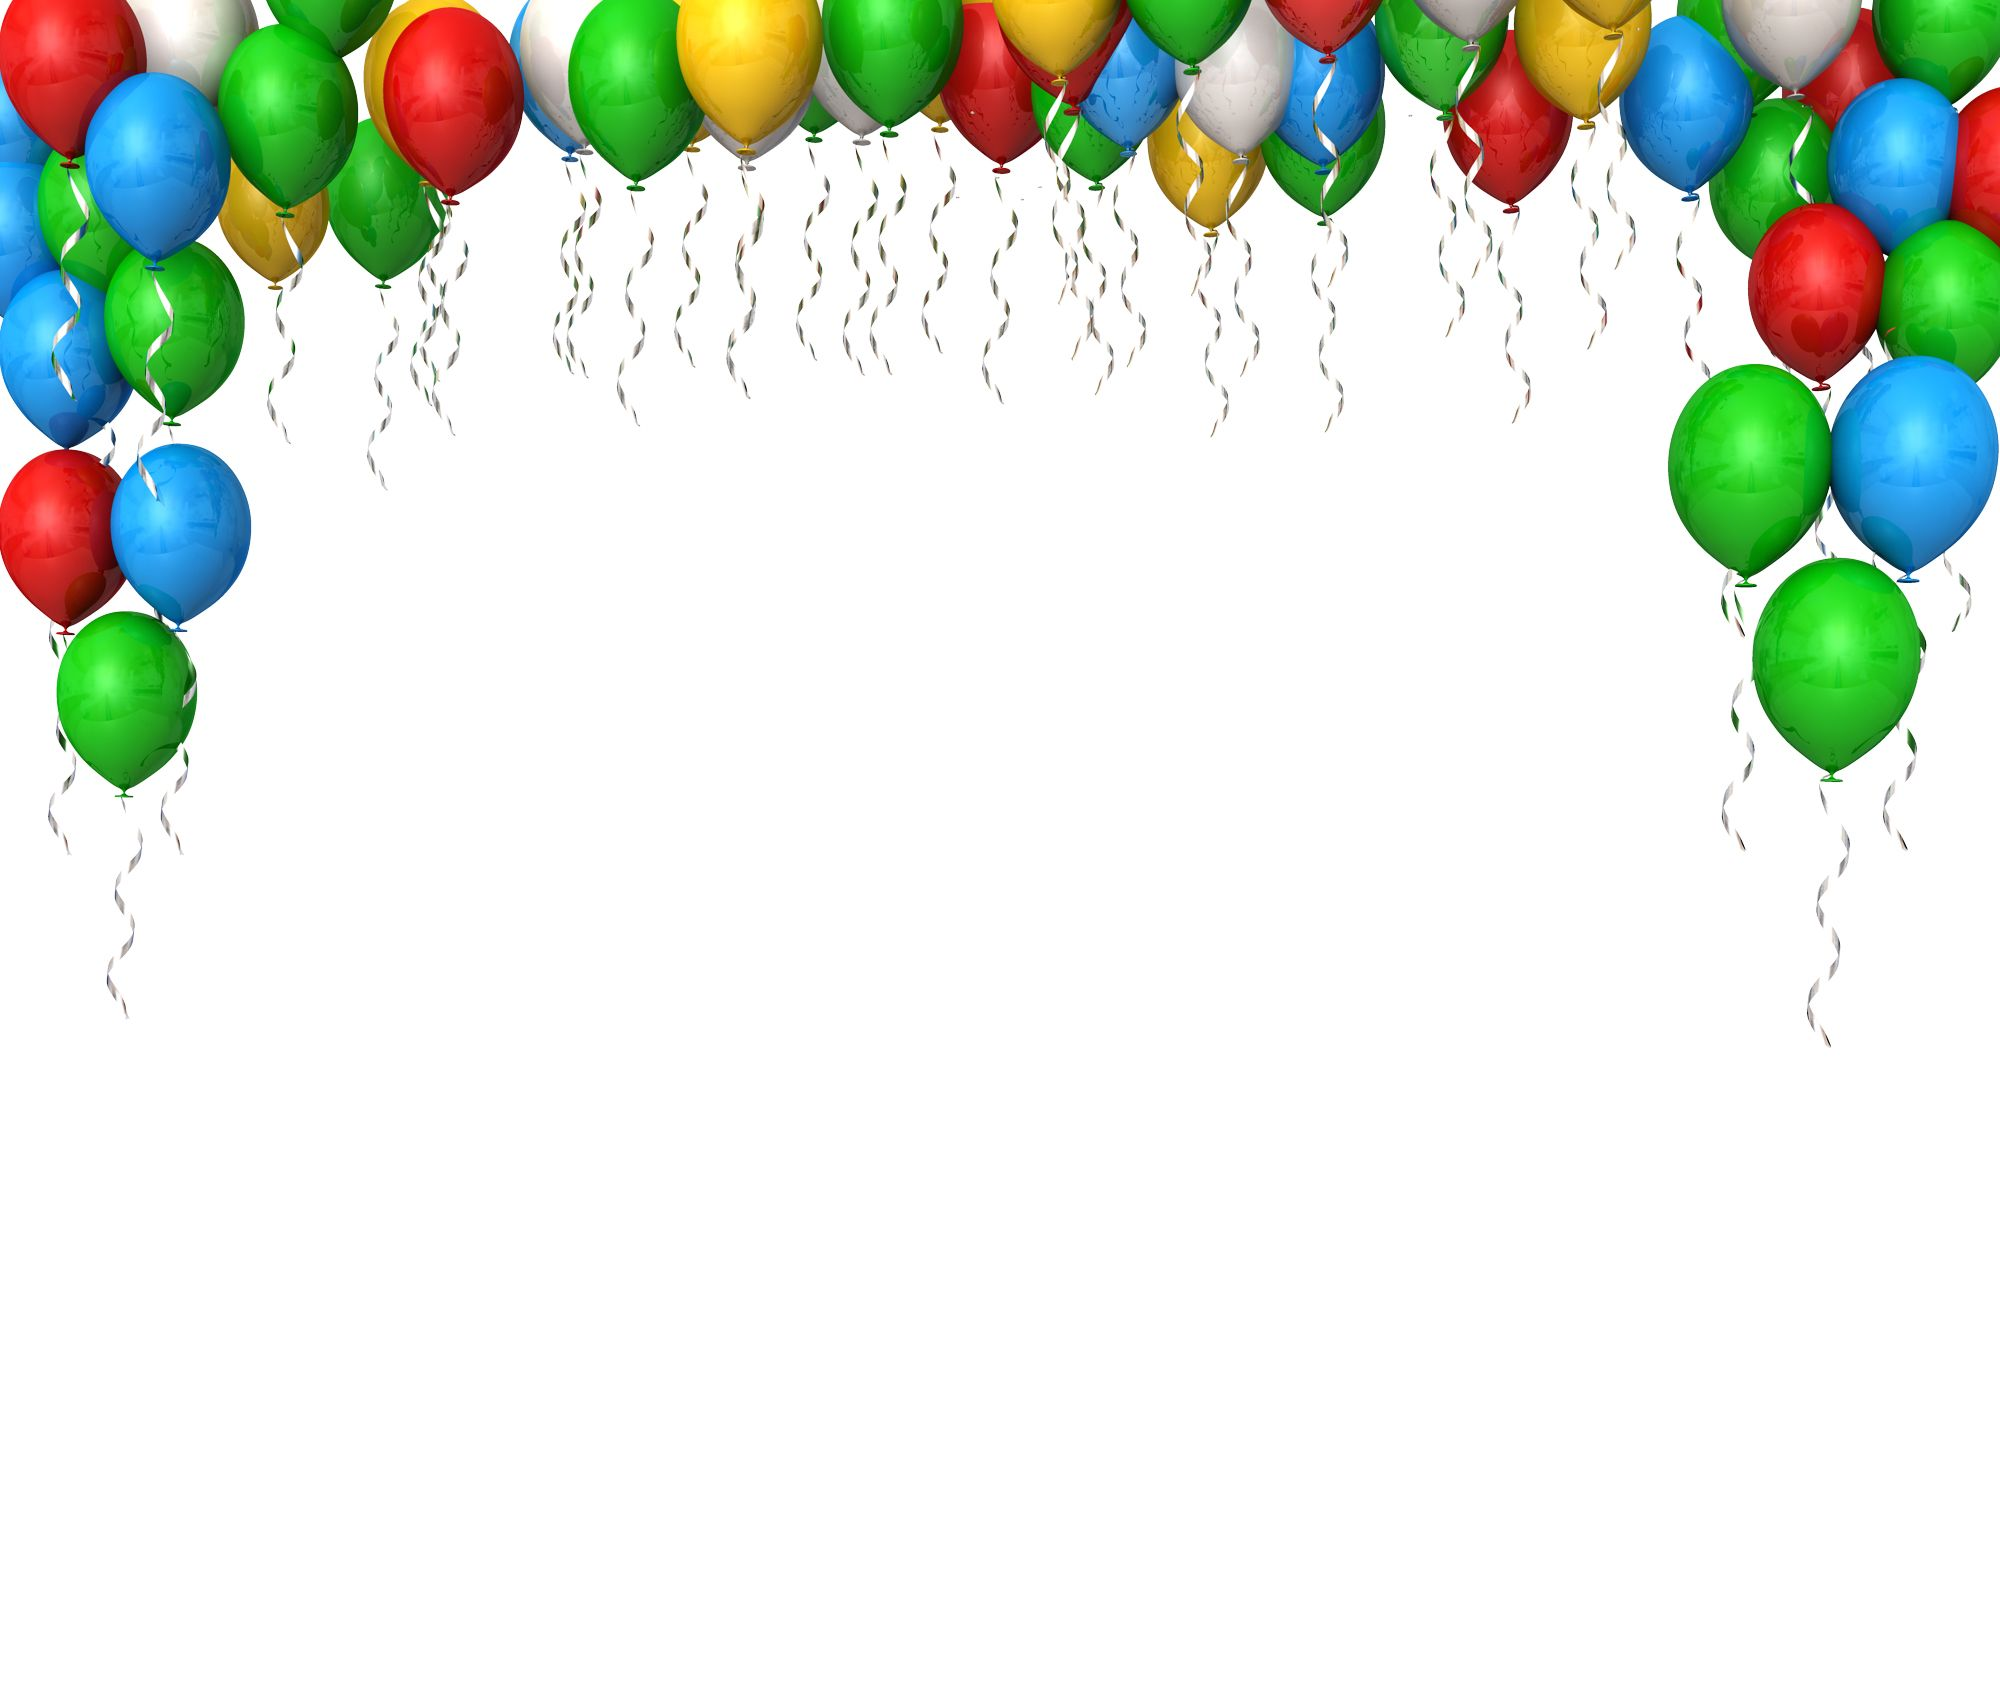 0914_colorful_balloons_for_birthday_celebrations_stock_photo_Slide01